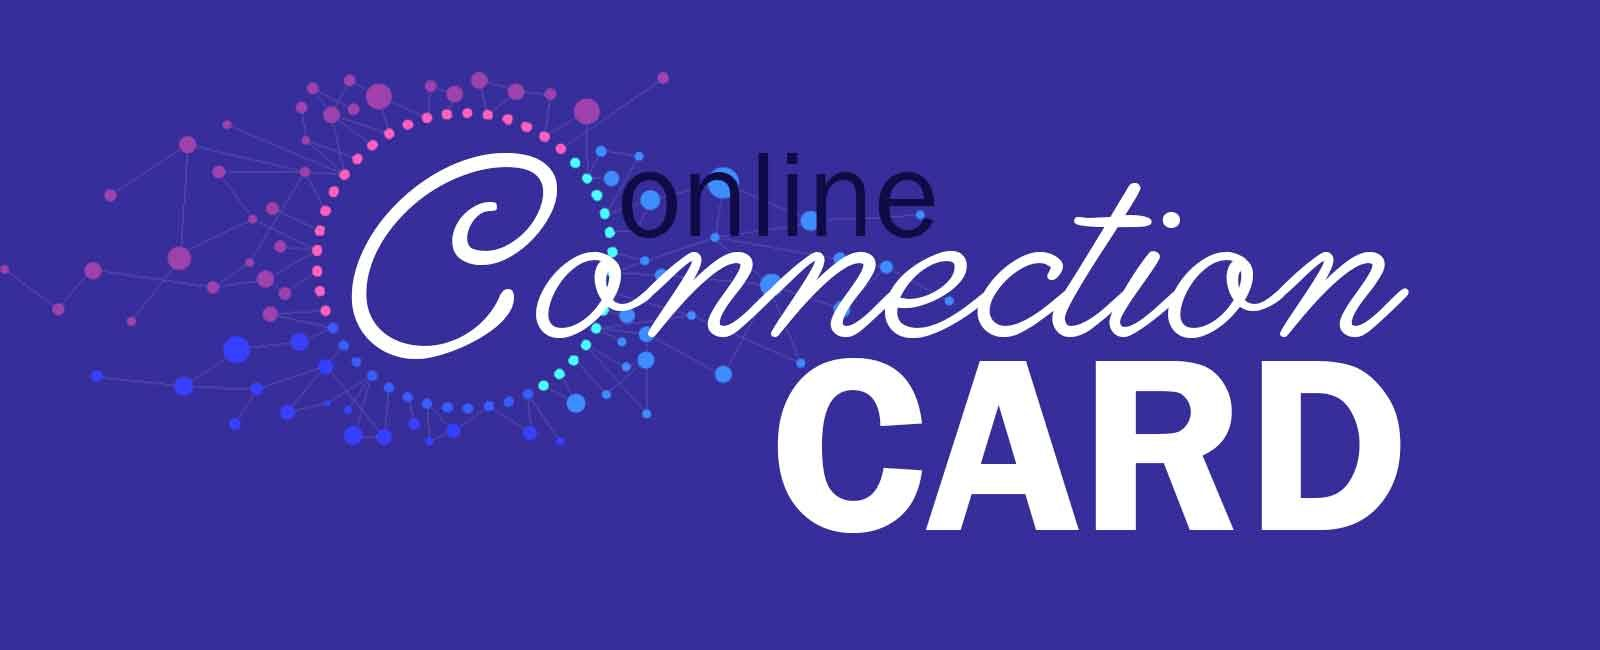 Online Connection Card